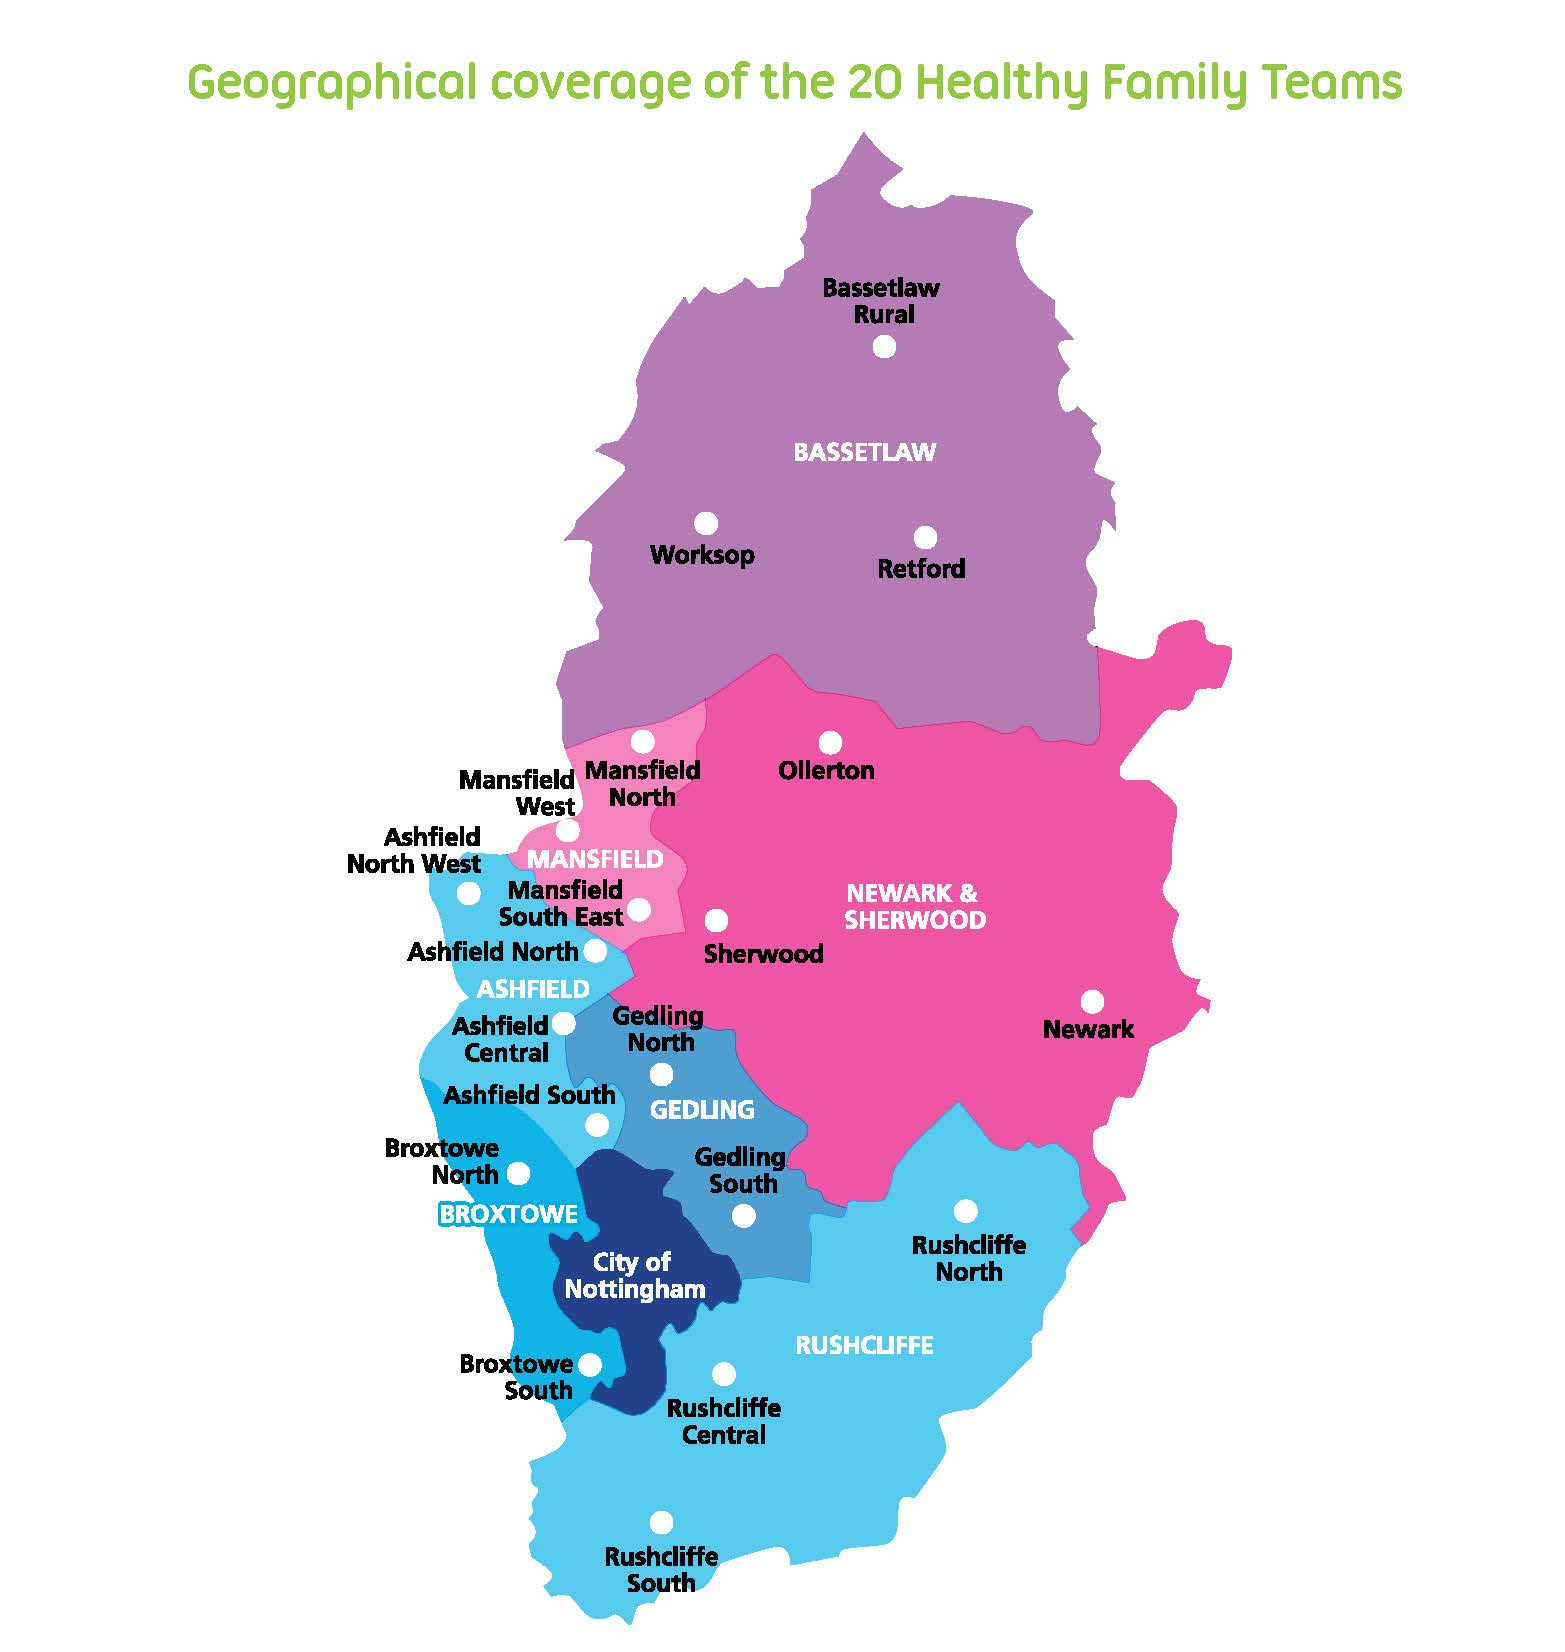 Map of the 20 Healthy Family Teams